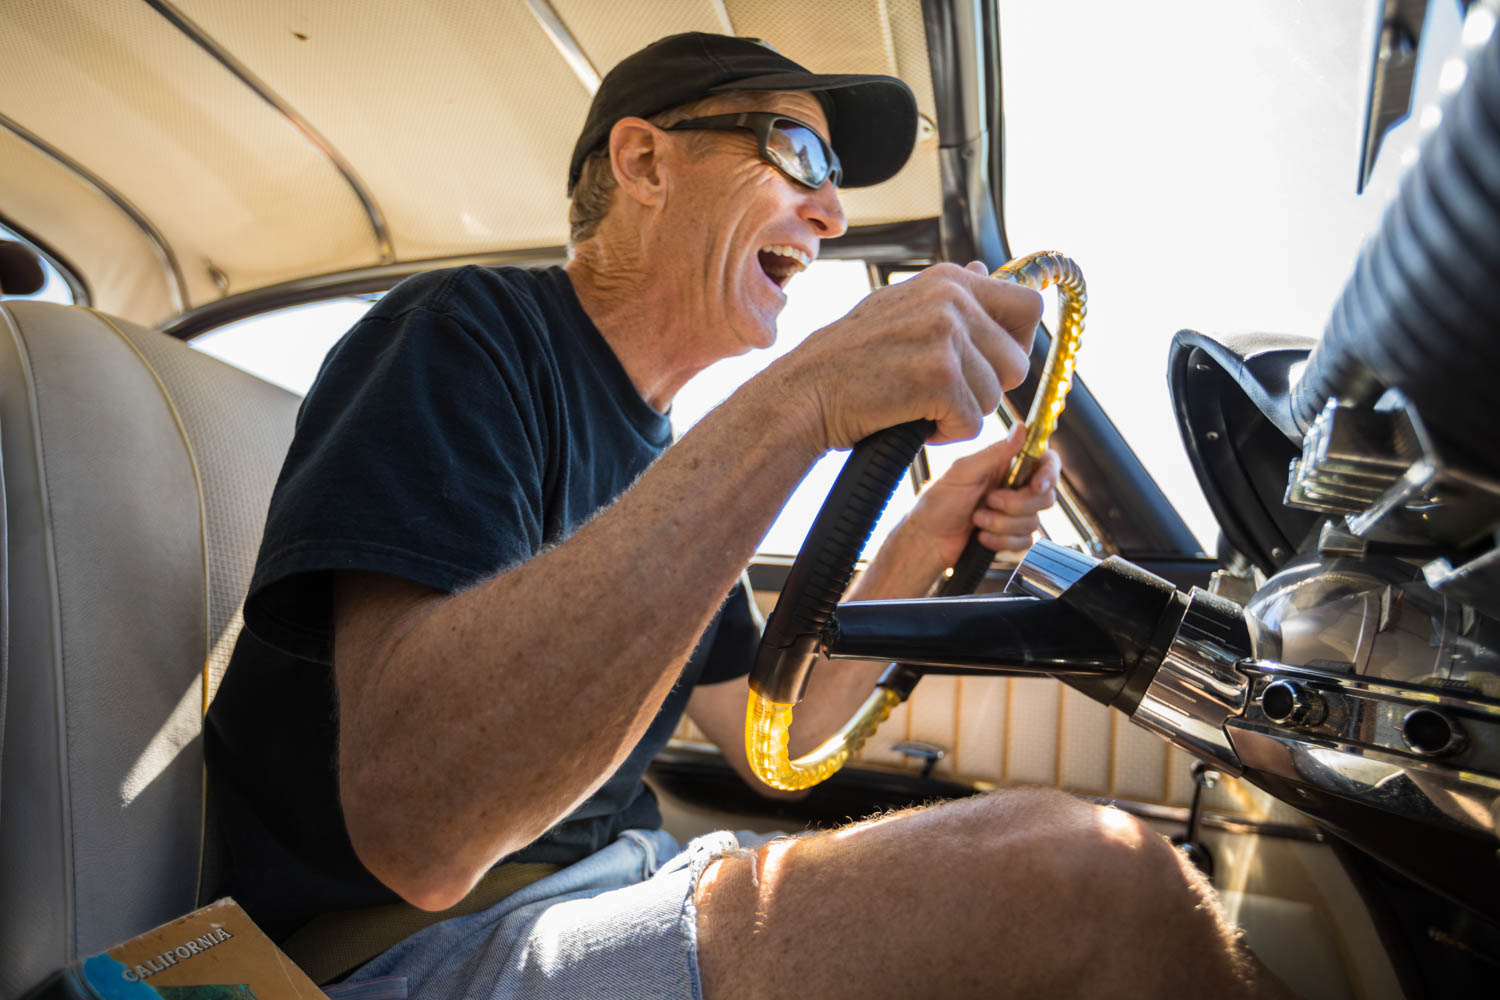 His own odometer now rolled a bit, Stein set out to find another '61 Newport to relive that long ago journey with his friends. You can't go back, John—or can you?